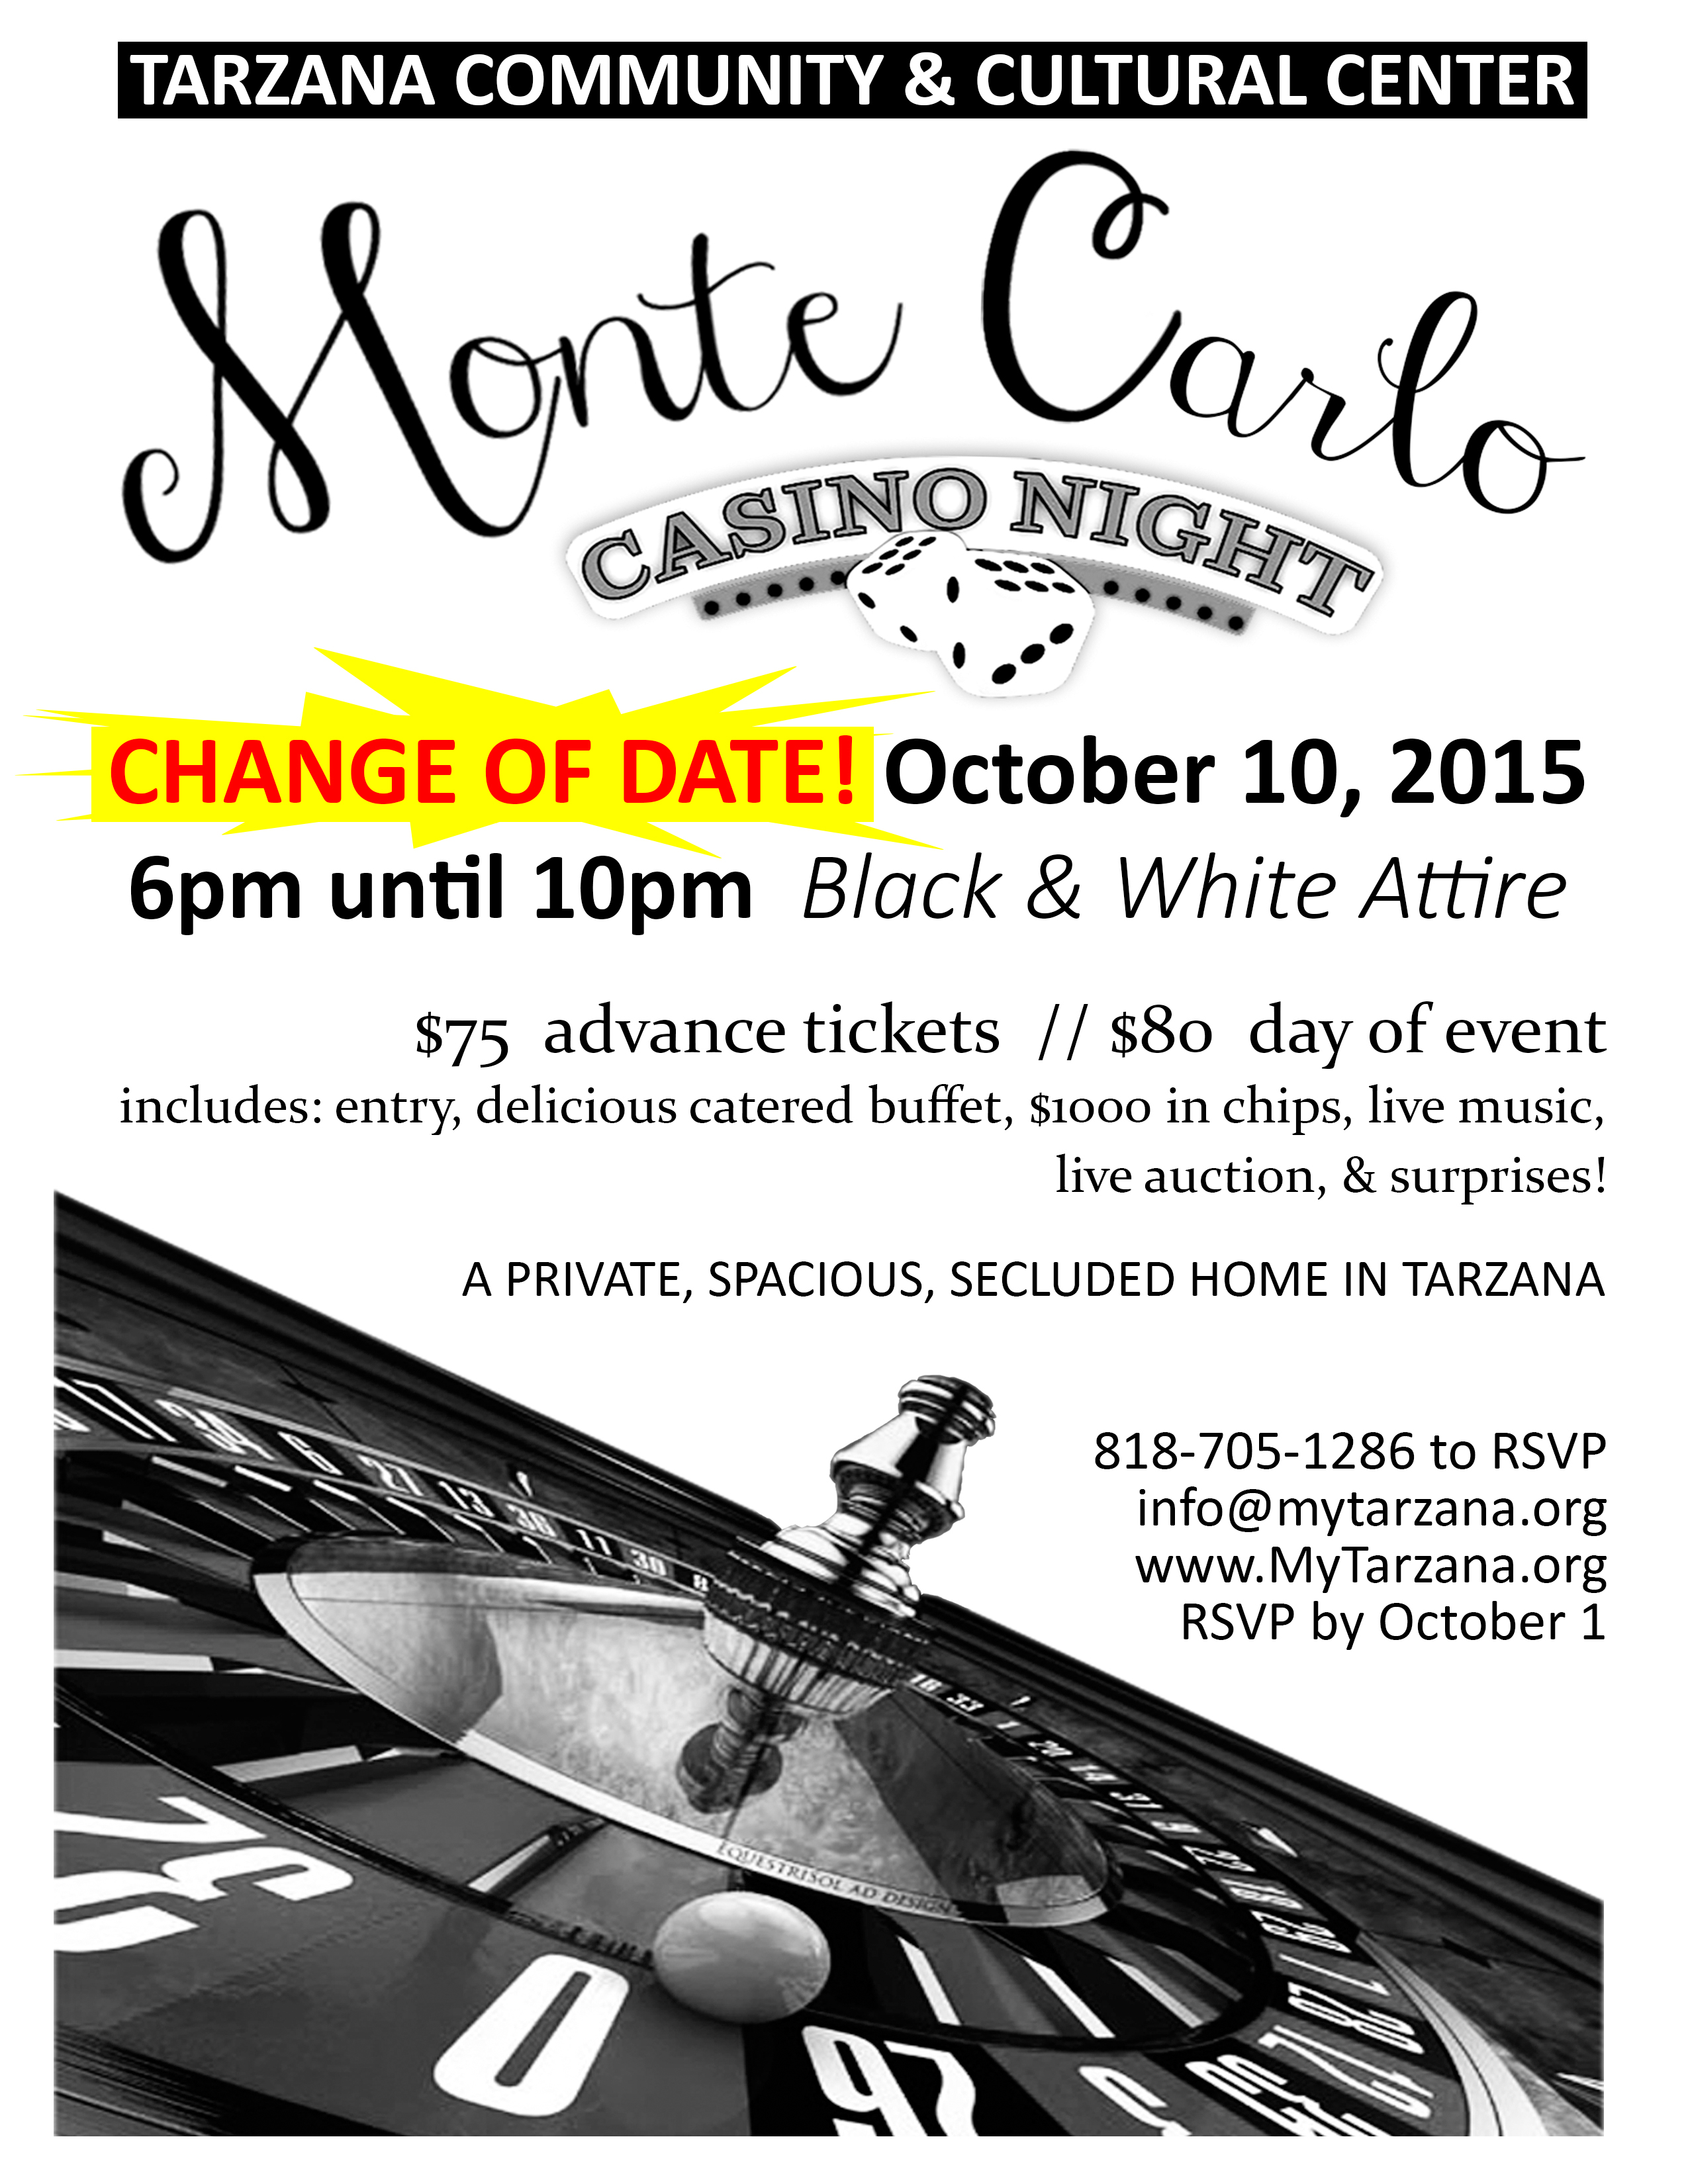 CHANGE_OF_DATE_-_TCCC_Casino_Night_flyer_10-10-15.jpg